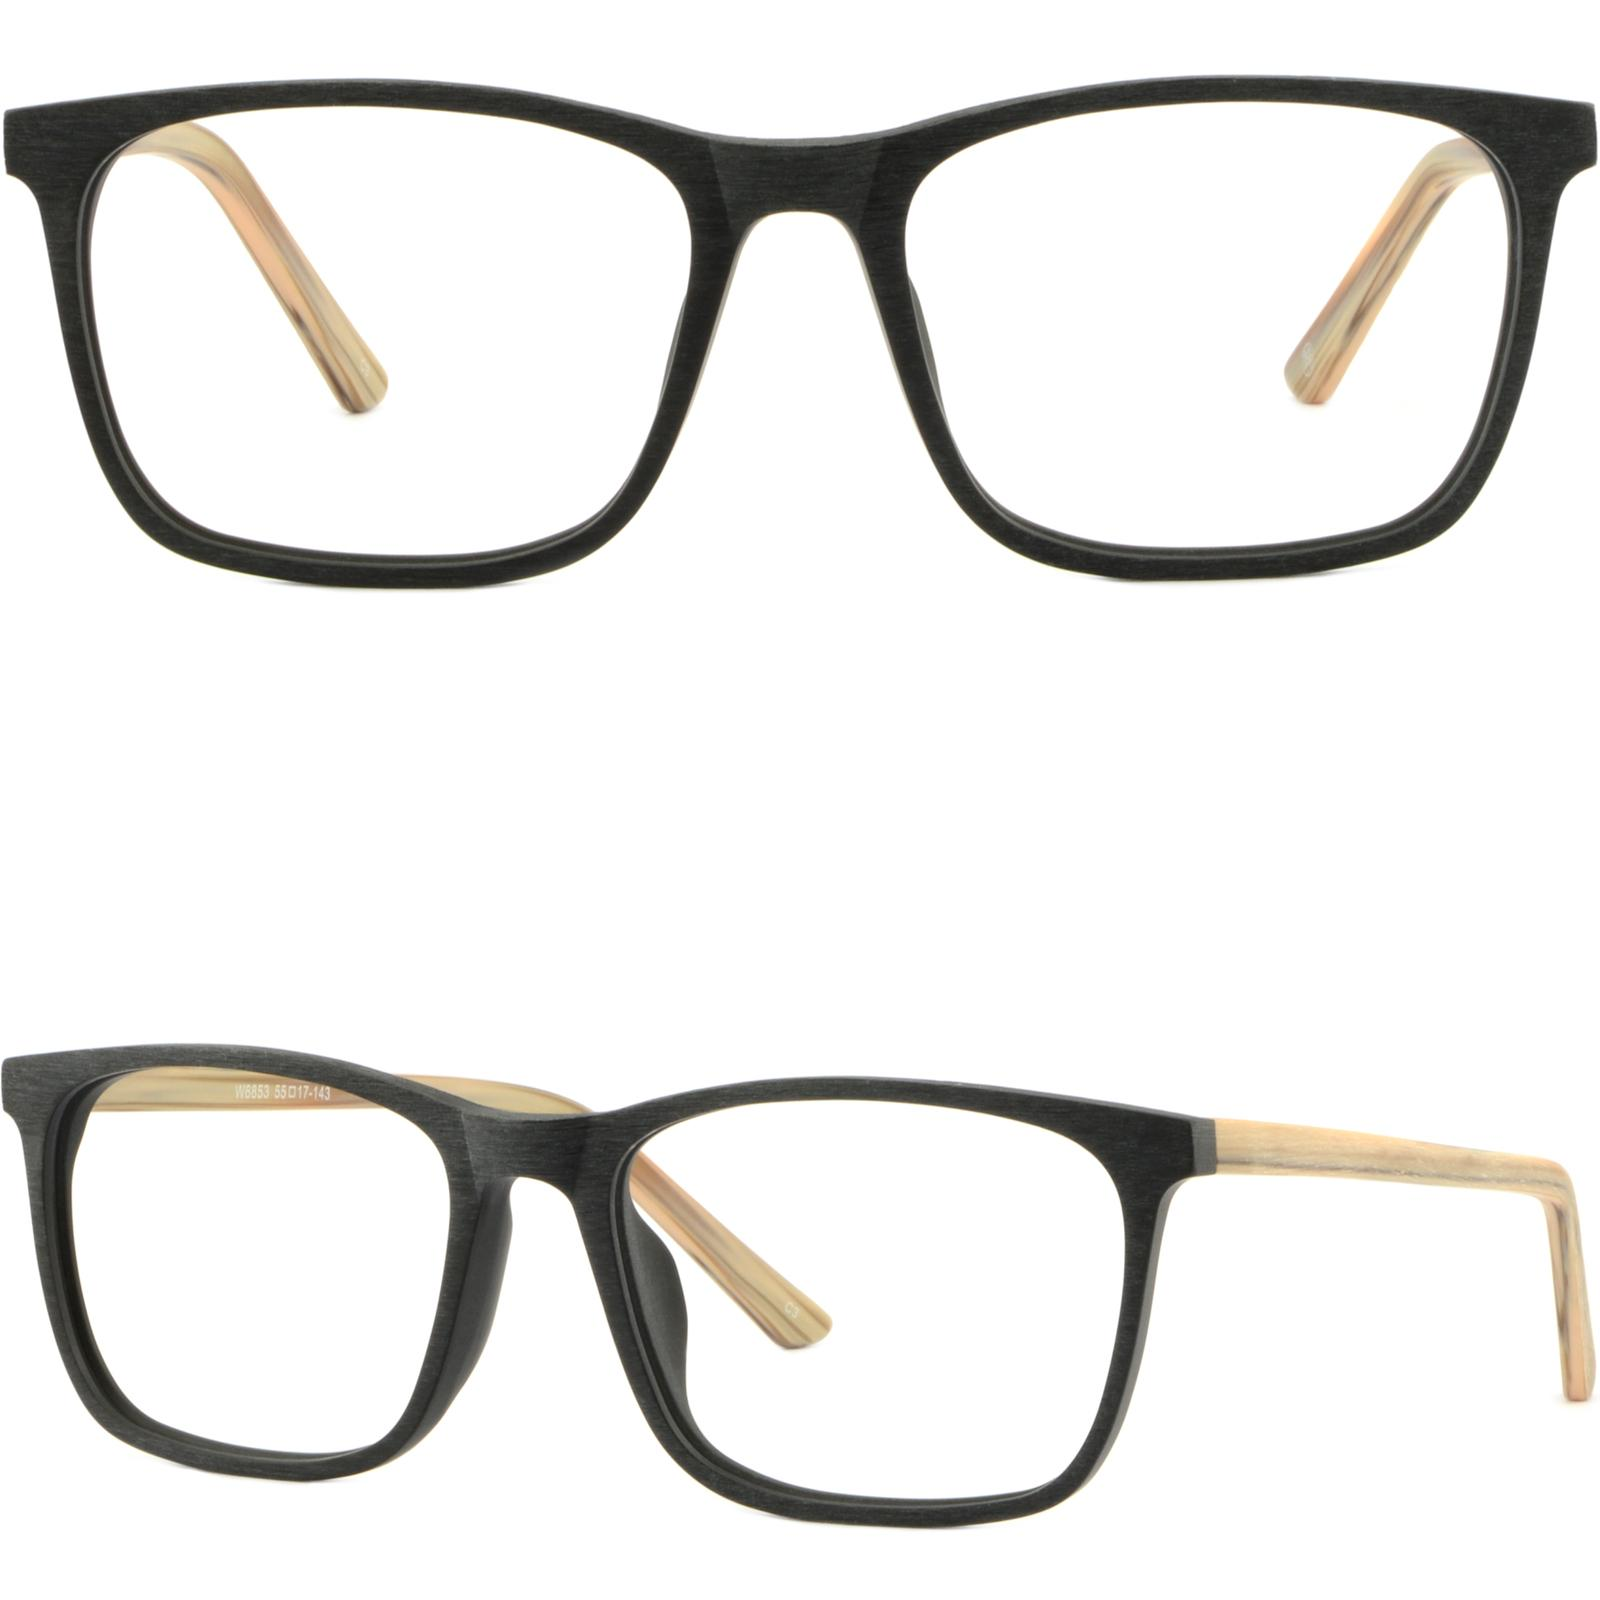 38f1ce00cb5 Square Light Men S Women S Frame Plastic Glasses Eyeglasses Rectangle  Acetate Black Rectangular Wood Imitation Eyeglass Frame Trends Eyeglass  Frames Round ...